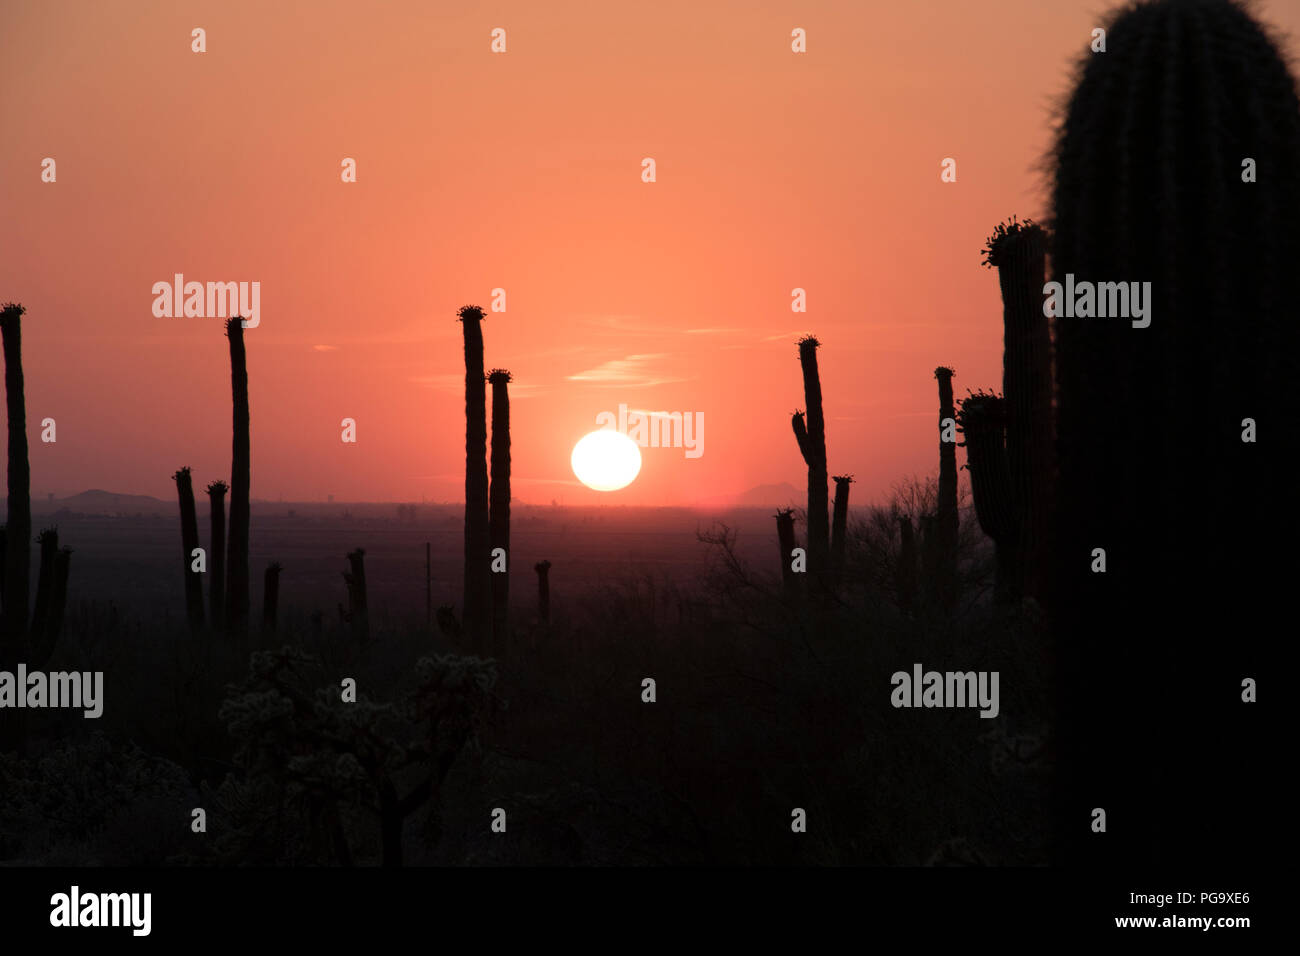 Sunset in the desert with cactus silhouettes. Beautiful desert sunset with large cactus. - Stock Image